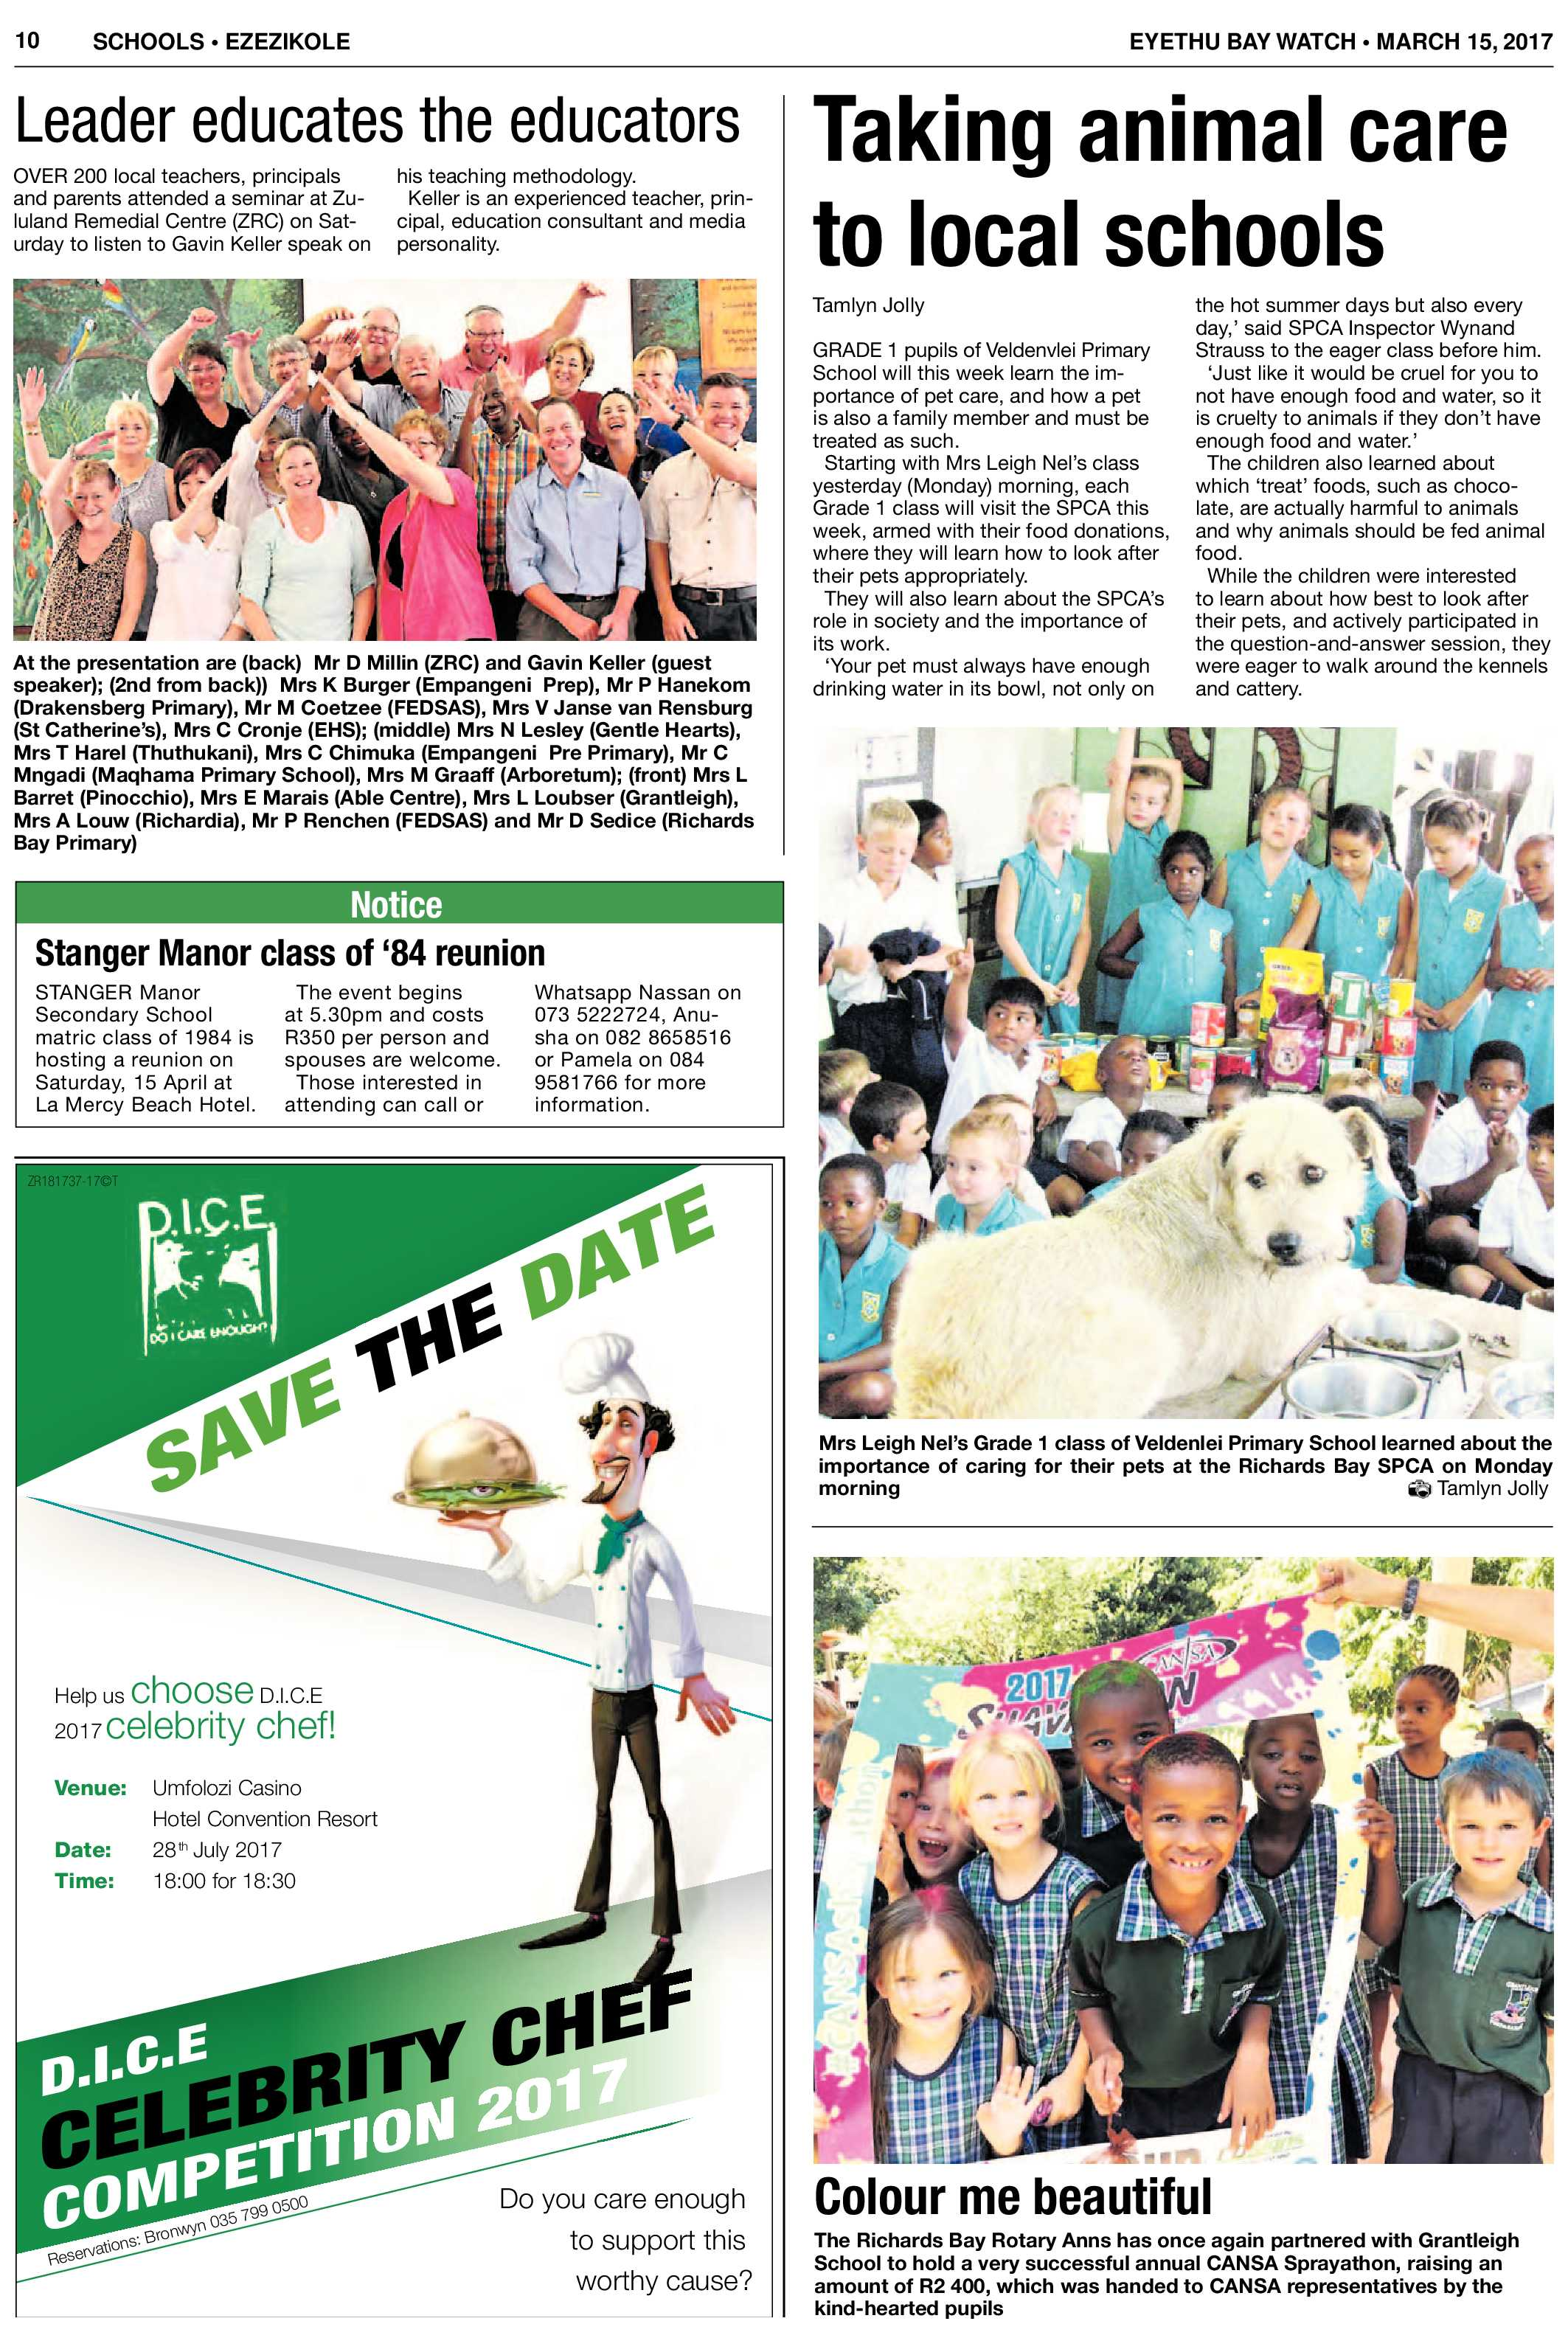 eyethu-baywatch-15-march-epapers-page-10